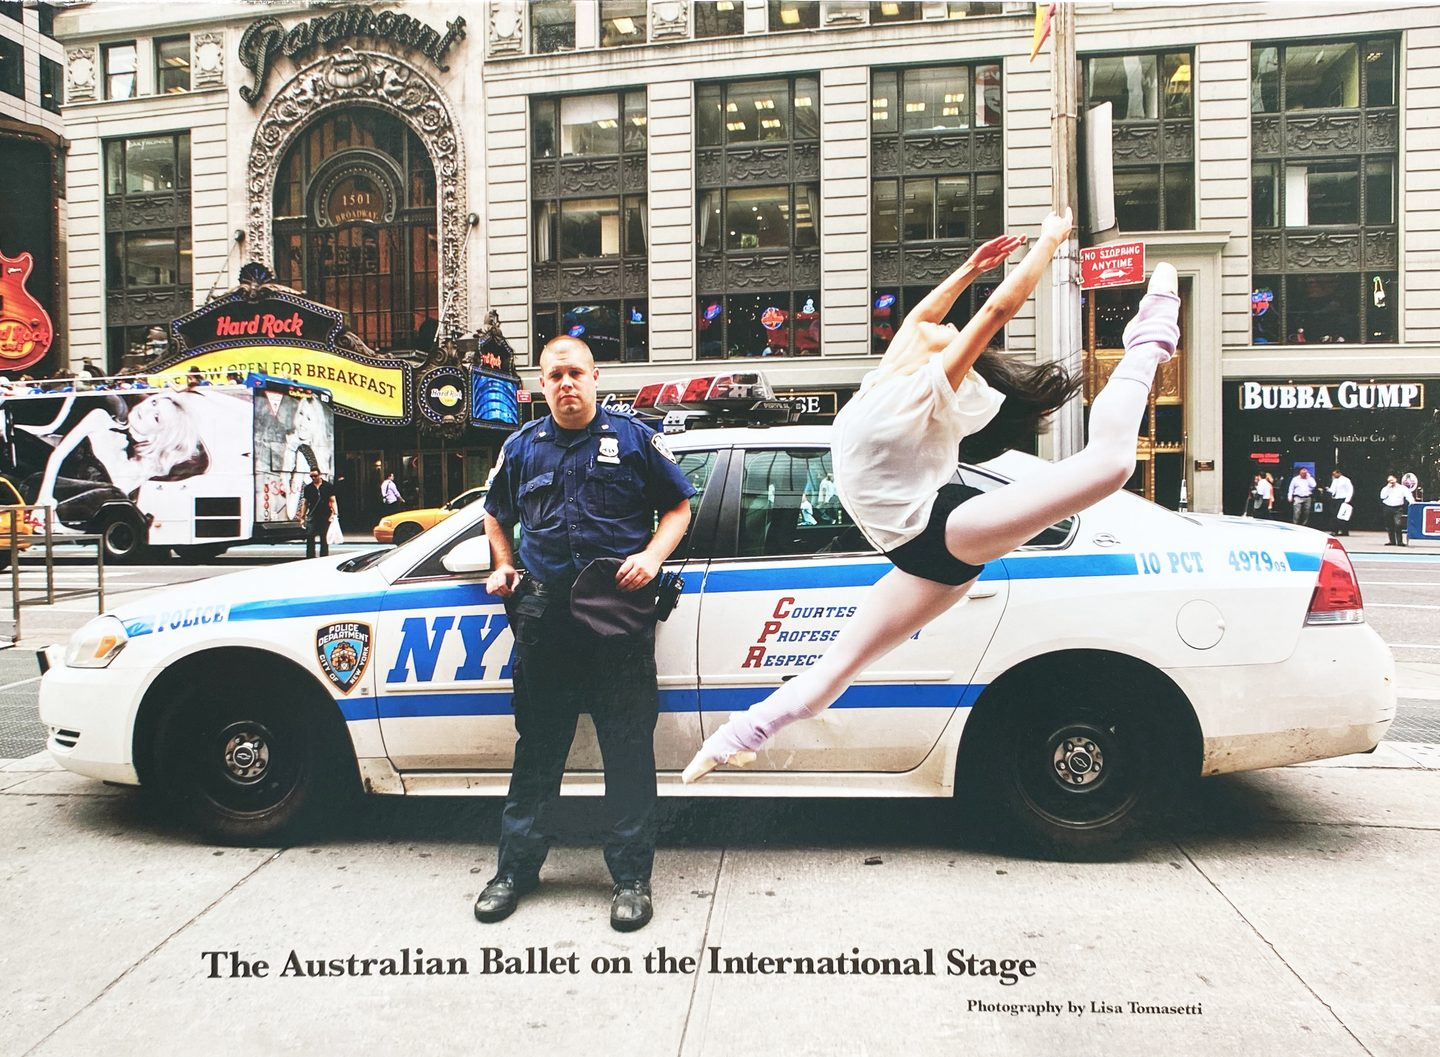 The Australian Ballet on the International Stage - Photography by Lisa Tomasetti